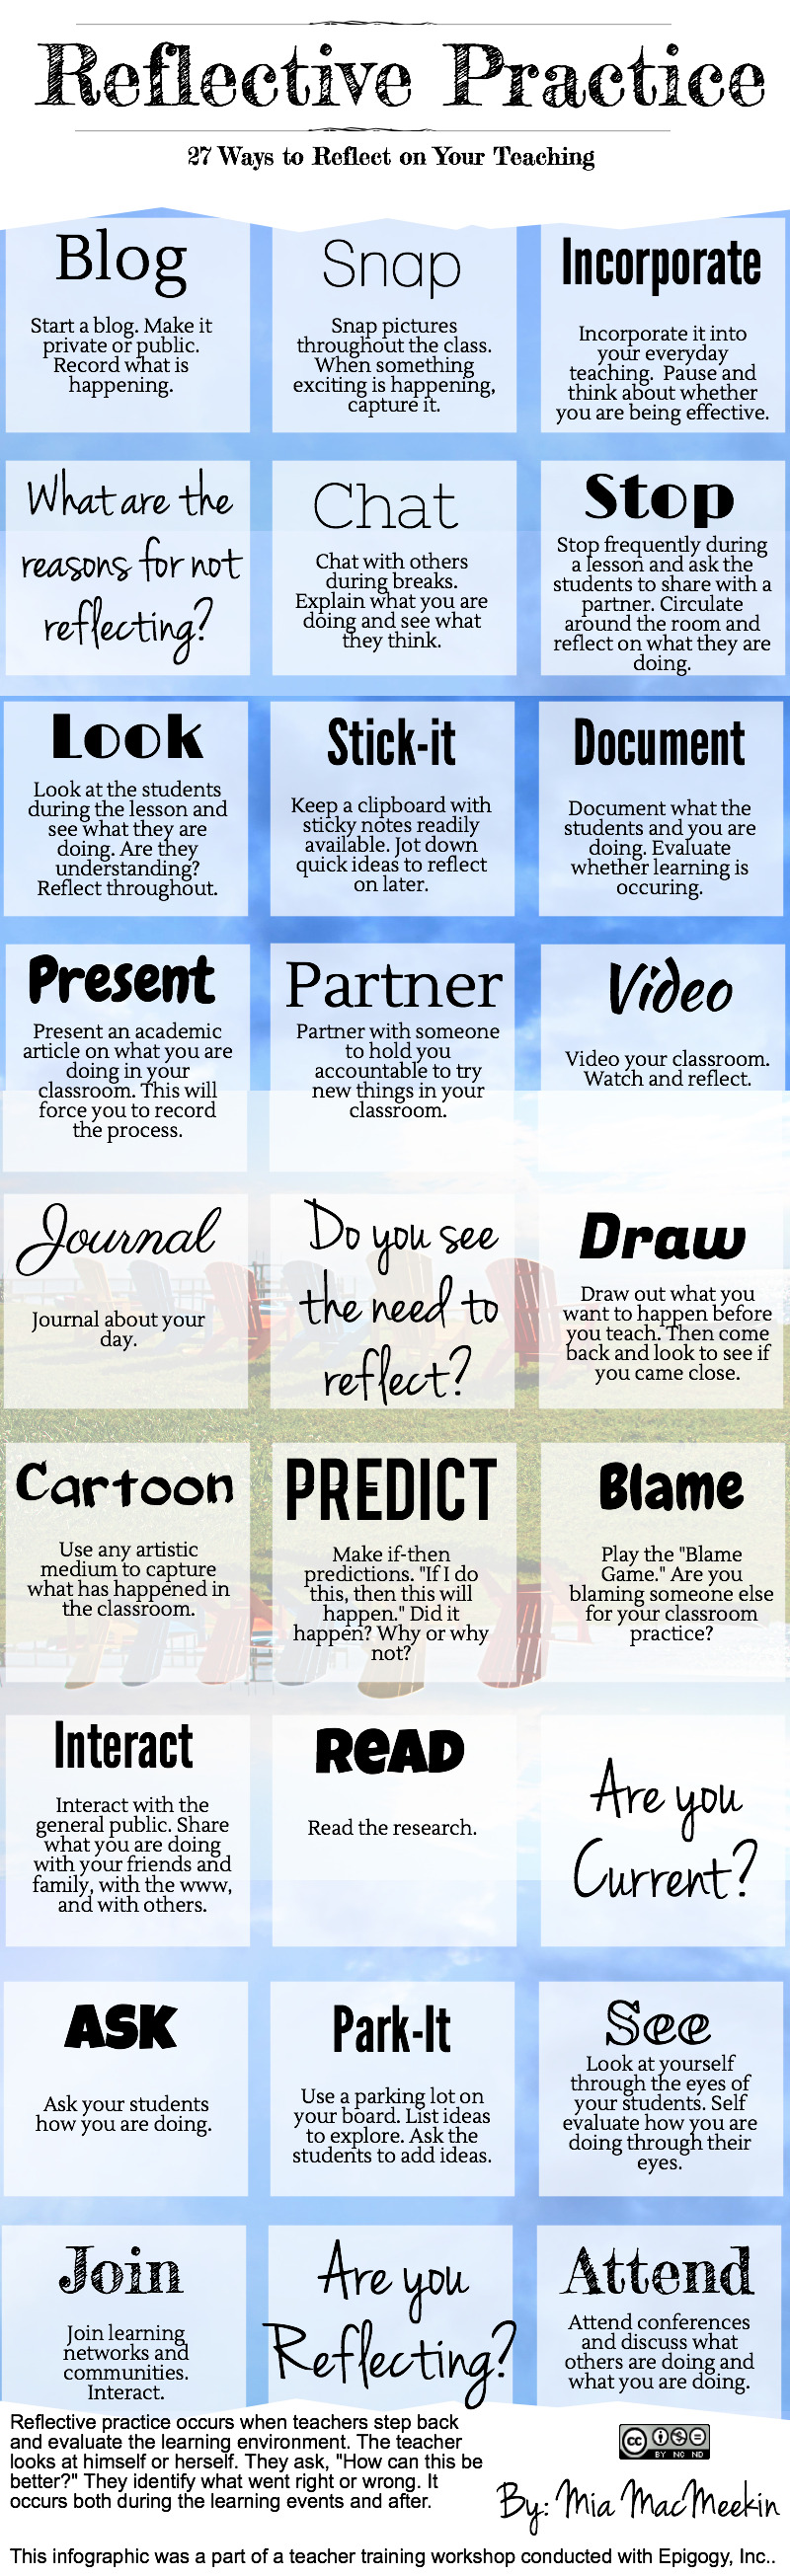 27 Ways to Improve your Teaching through Reflective Practice